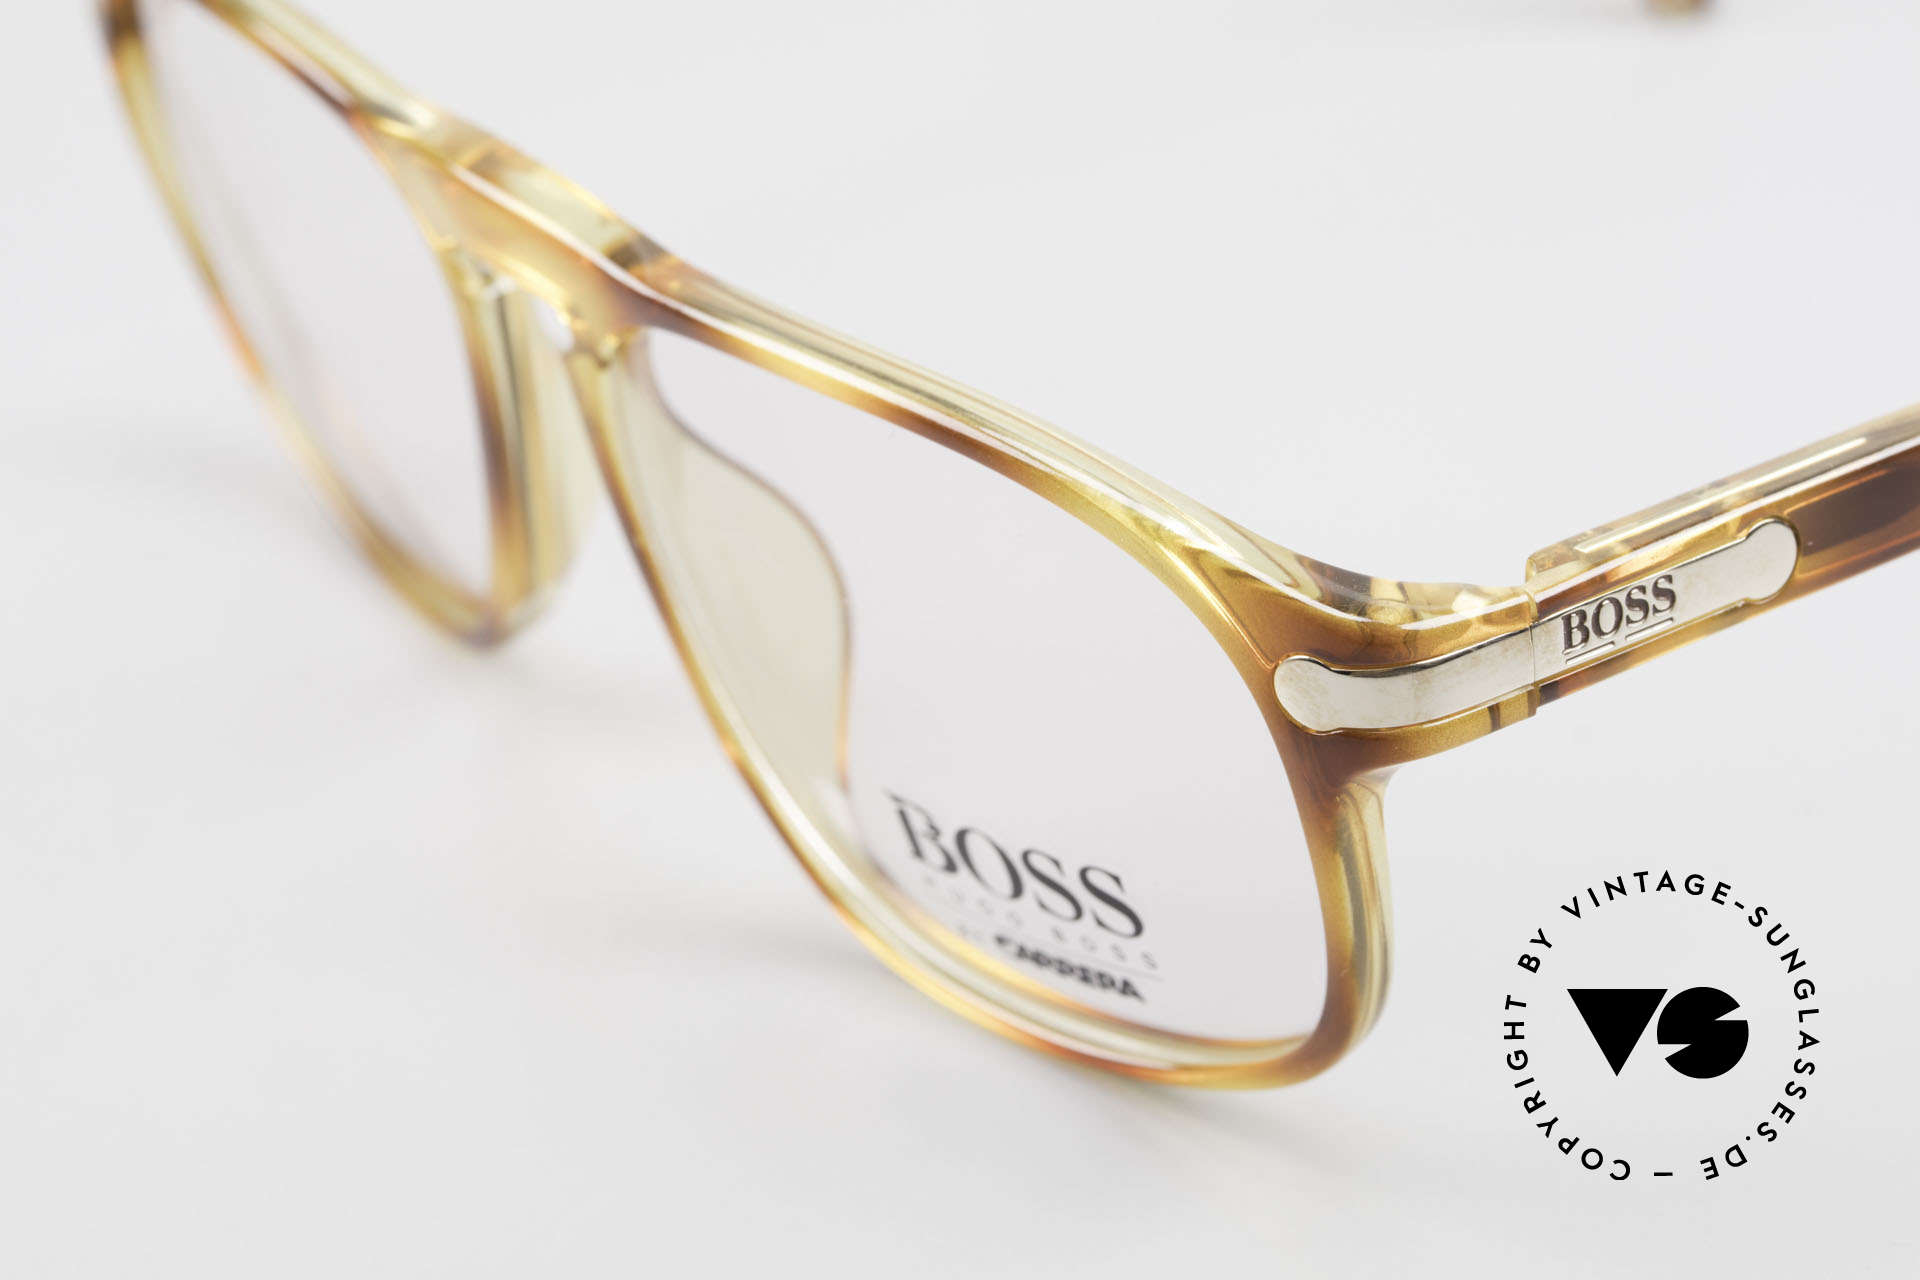 BOSS 5102 Square Vintage Optyl Glasses, typical 'Optyl shine' - as brilliant as just produced, Made for Men